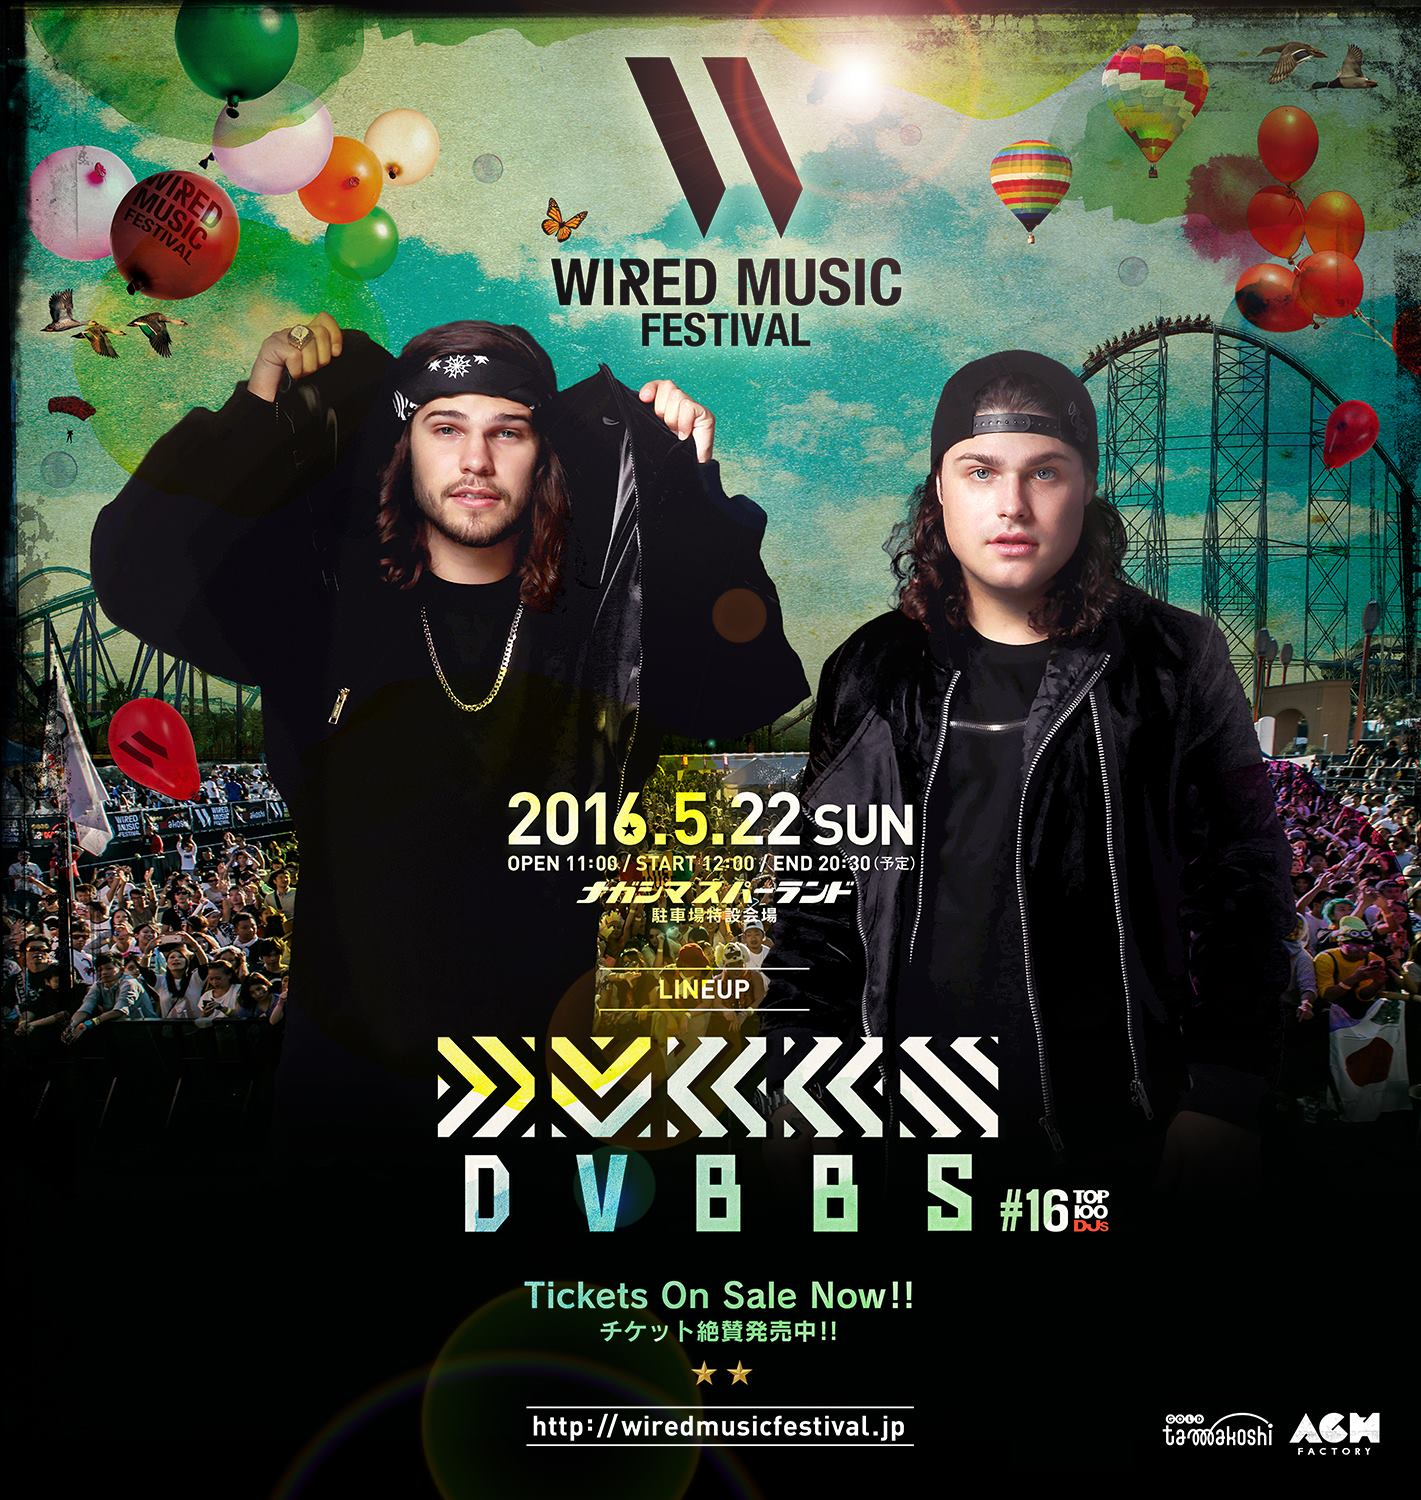 DVBBS WIRED MUSIC FESTIVAL 2016